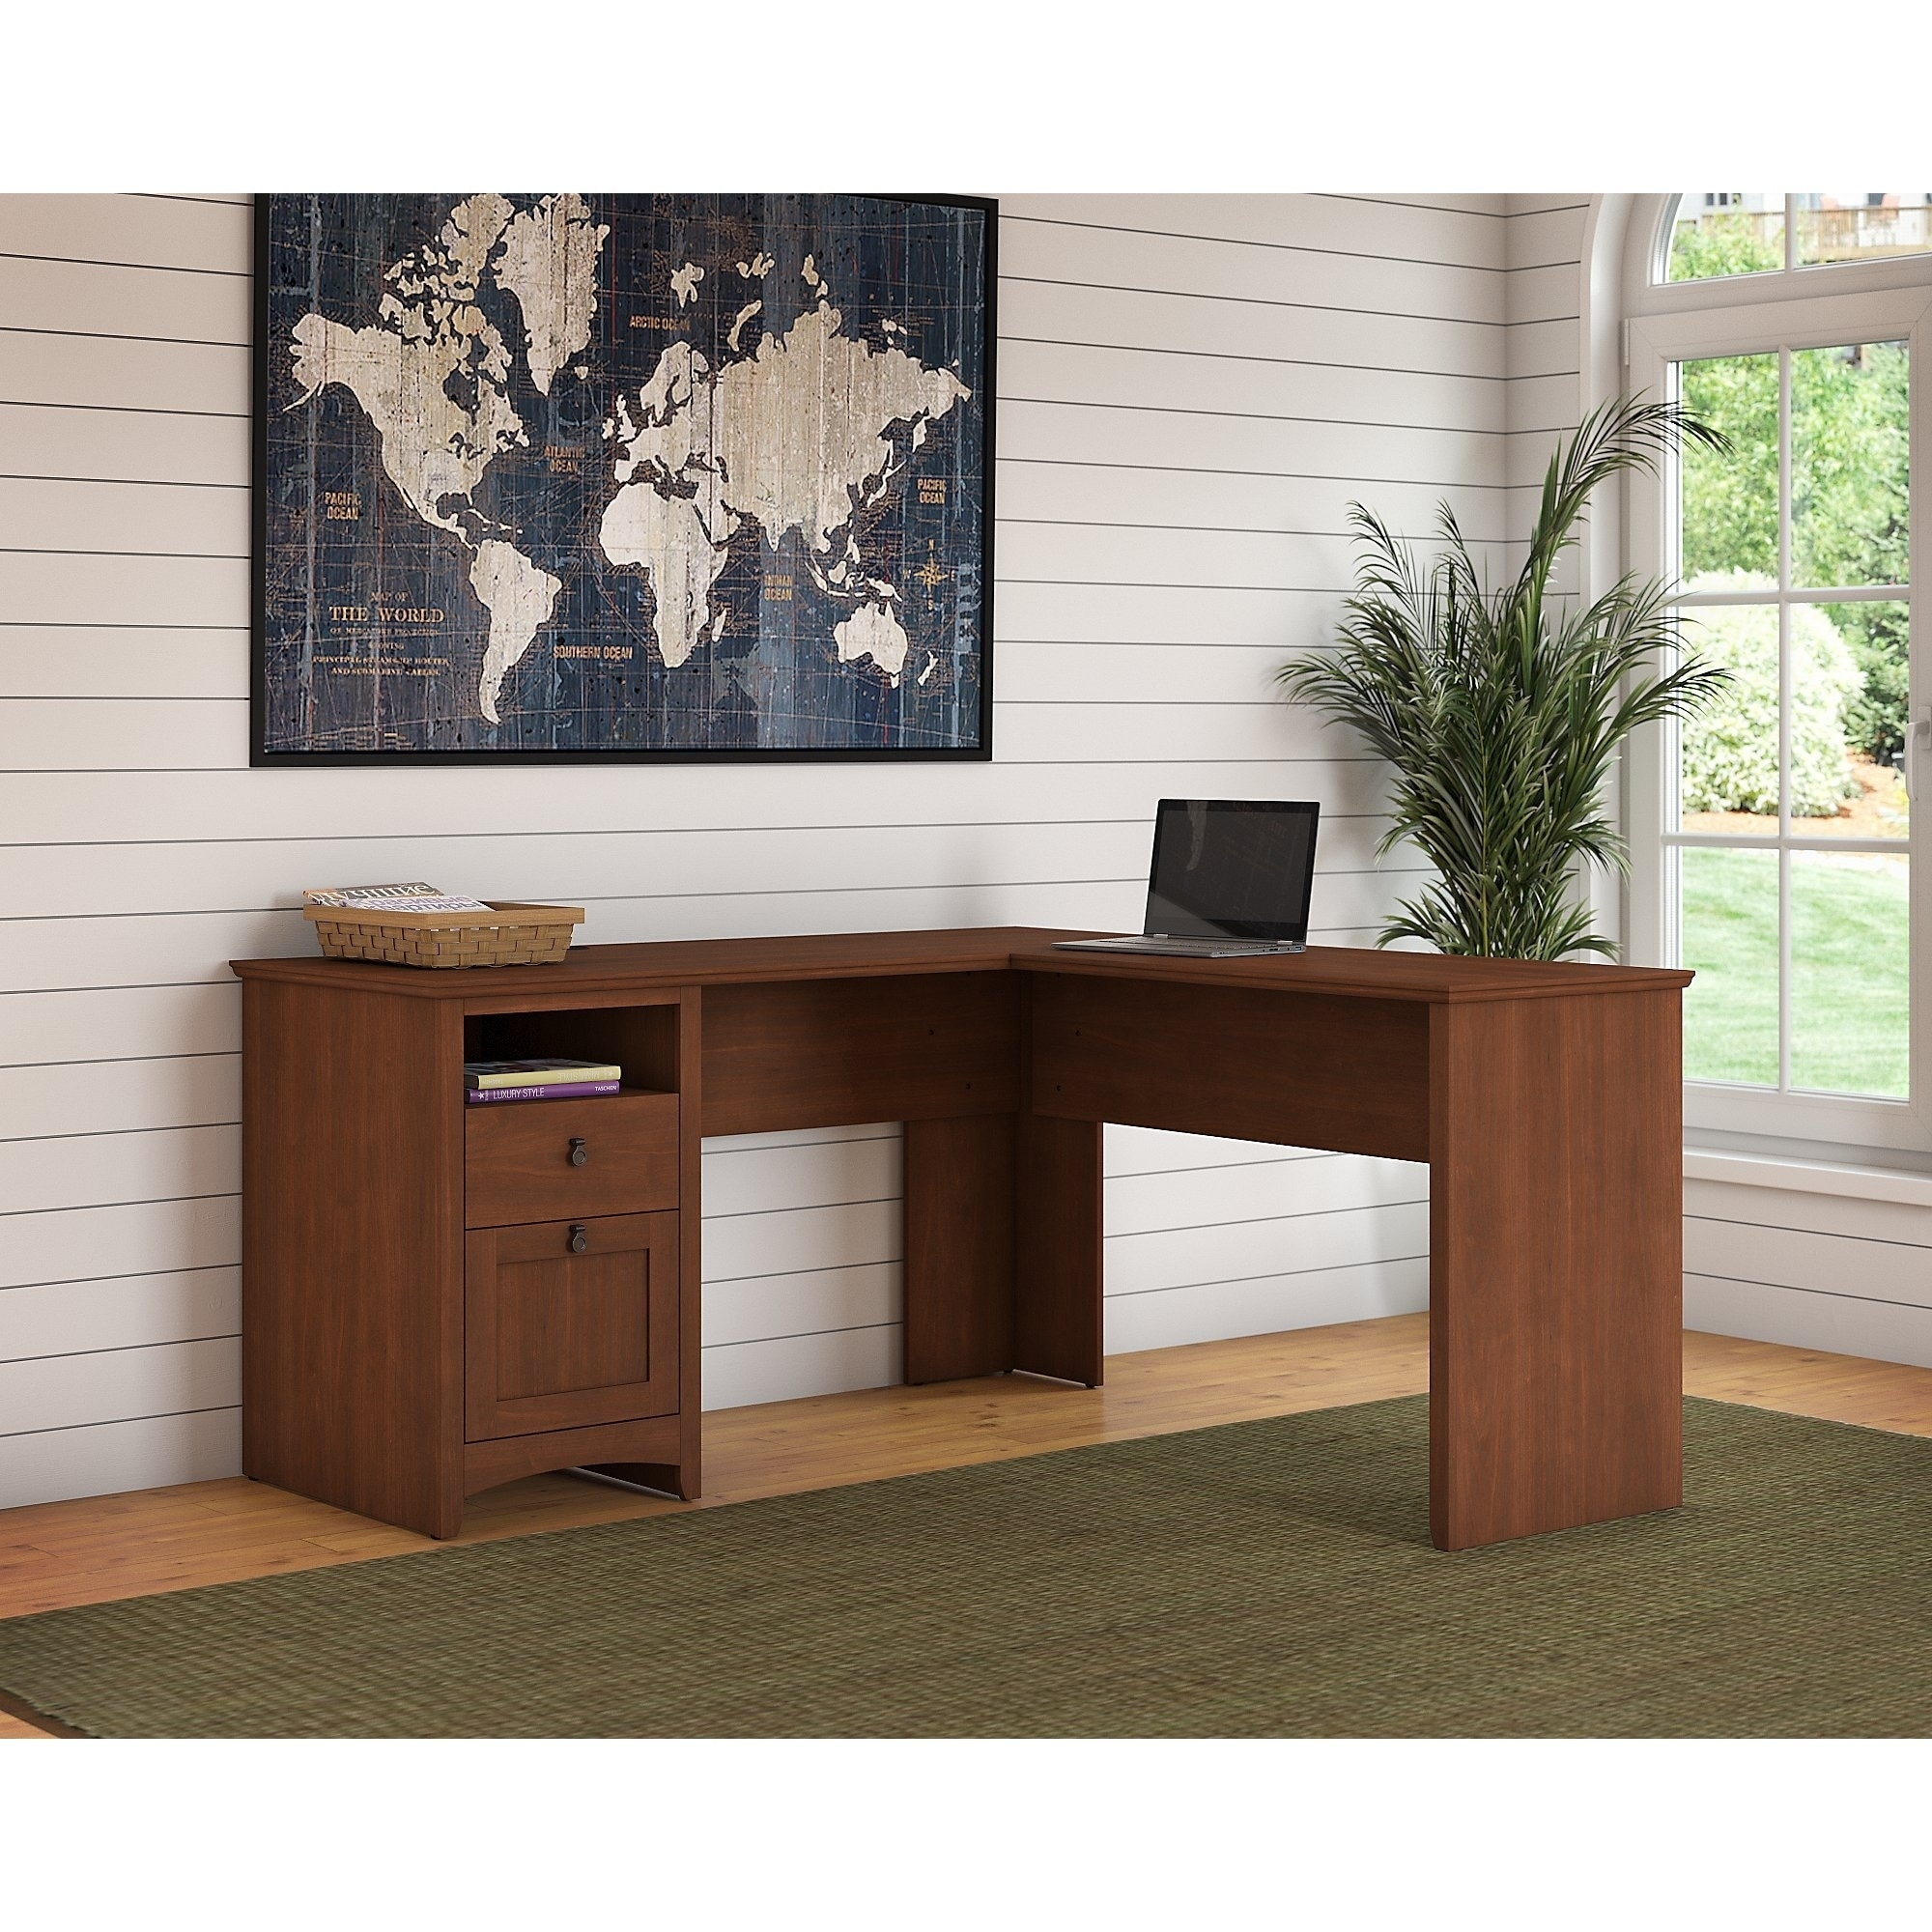 Merveilleux Copper Grove Plovdiv 60 Inch L Shaped Desk With Drawers In Cherry